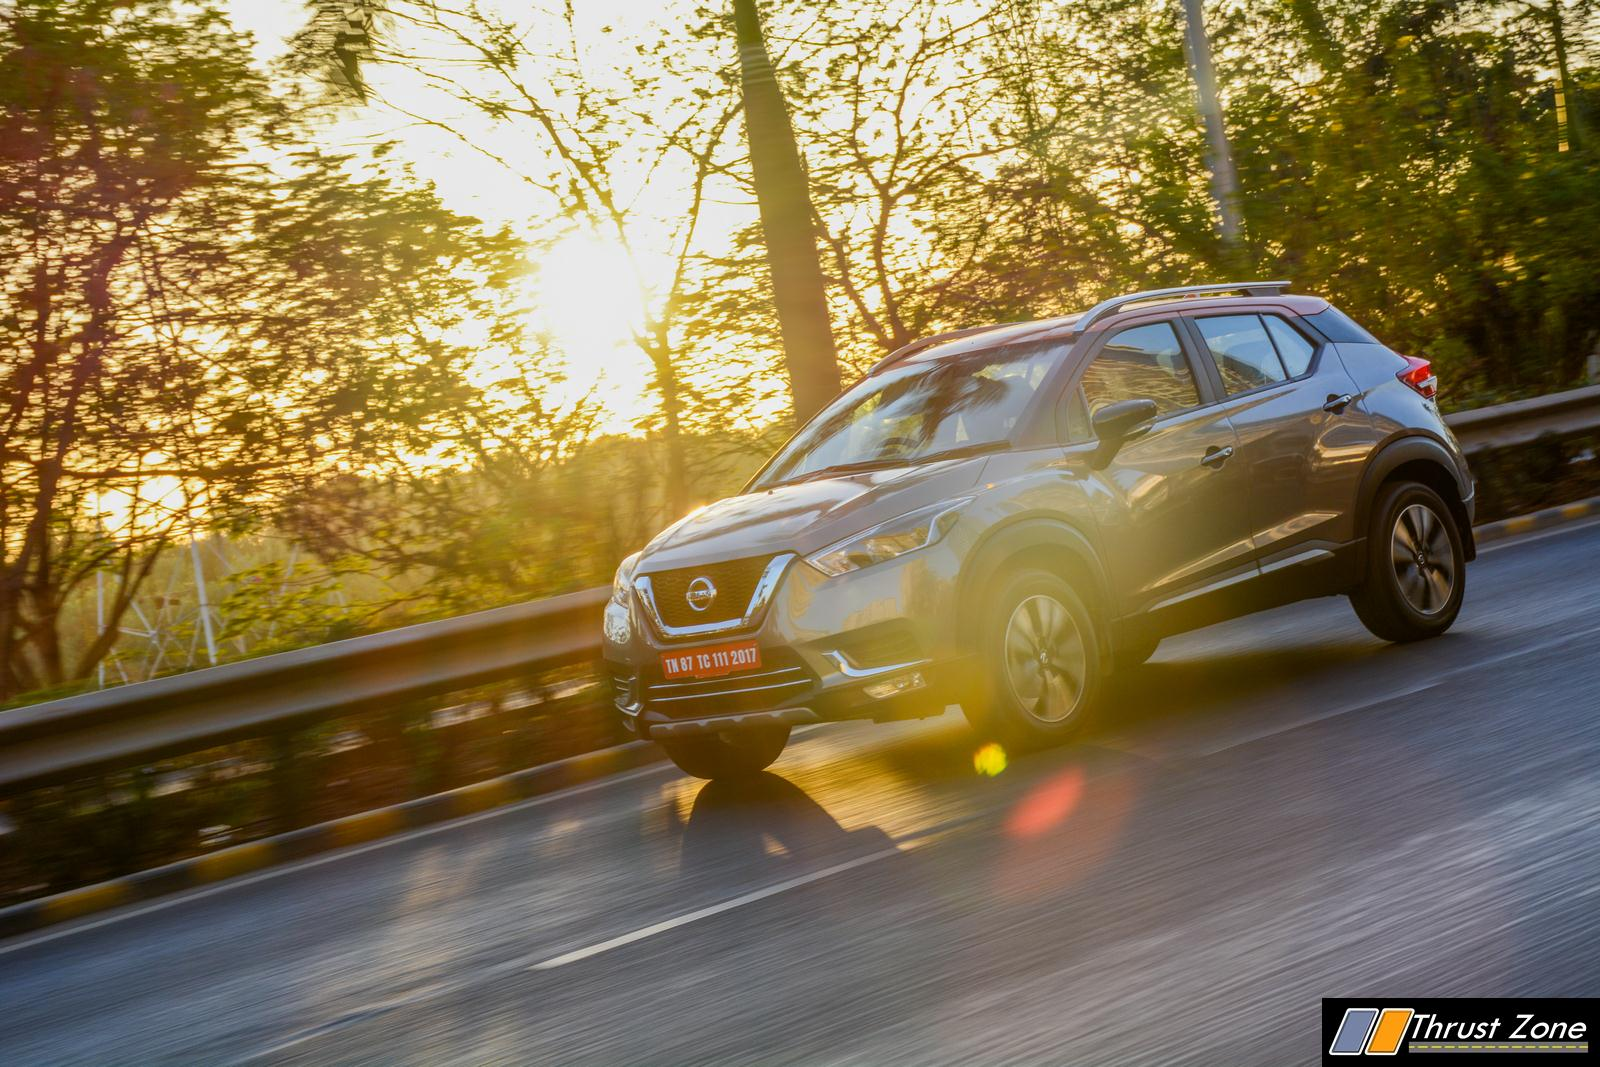 https://www.thrustzone.com/wp-content/uploads/2019/05/nissan-kicks-india-diesel-review-11.jpg